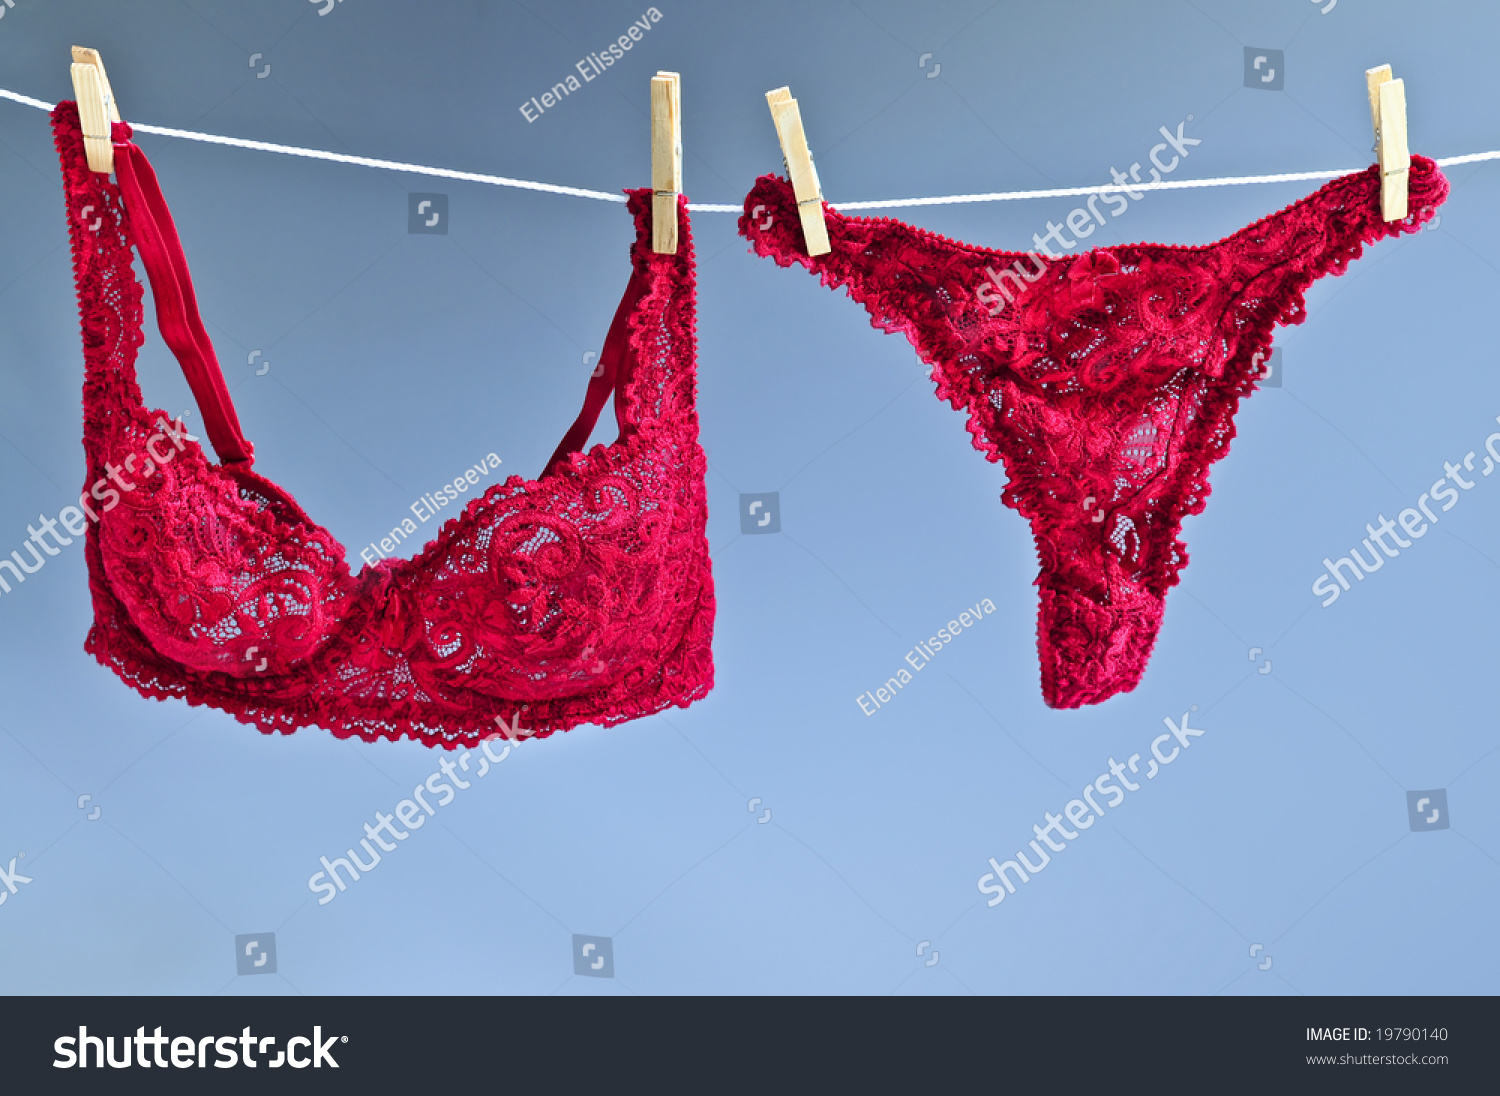 Sexy Lace Lingerie Hanging On Clothes Stock Photo 19790140 ...